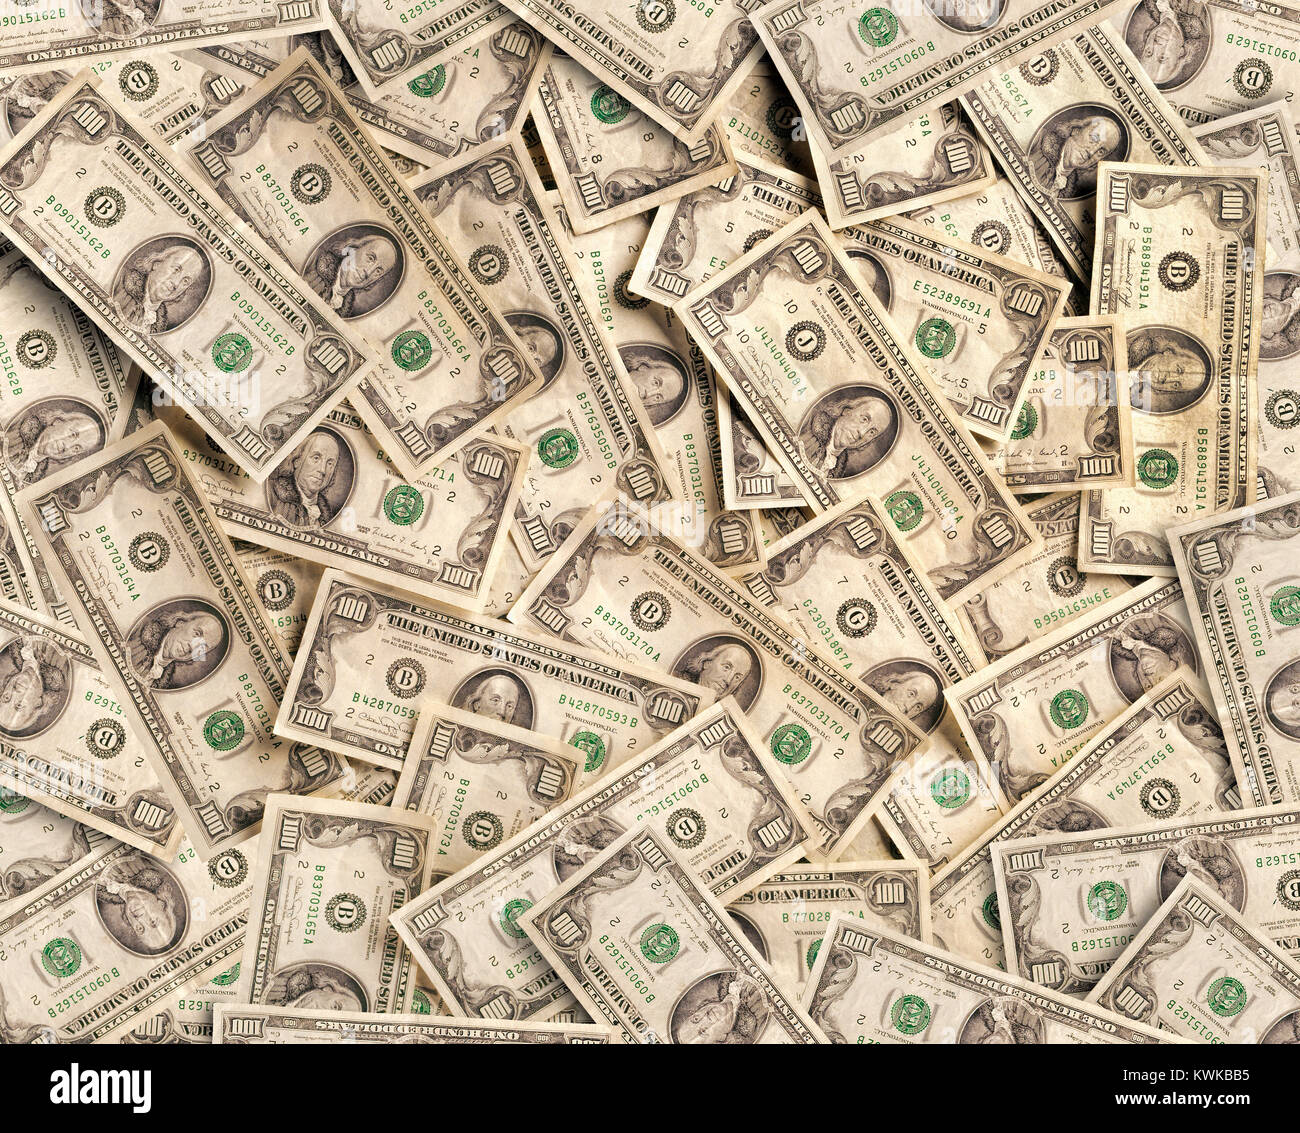 Collection of numerous one hundred dollar US bills - Stock Image